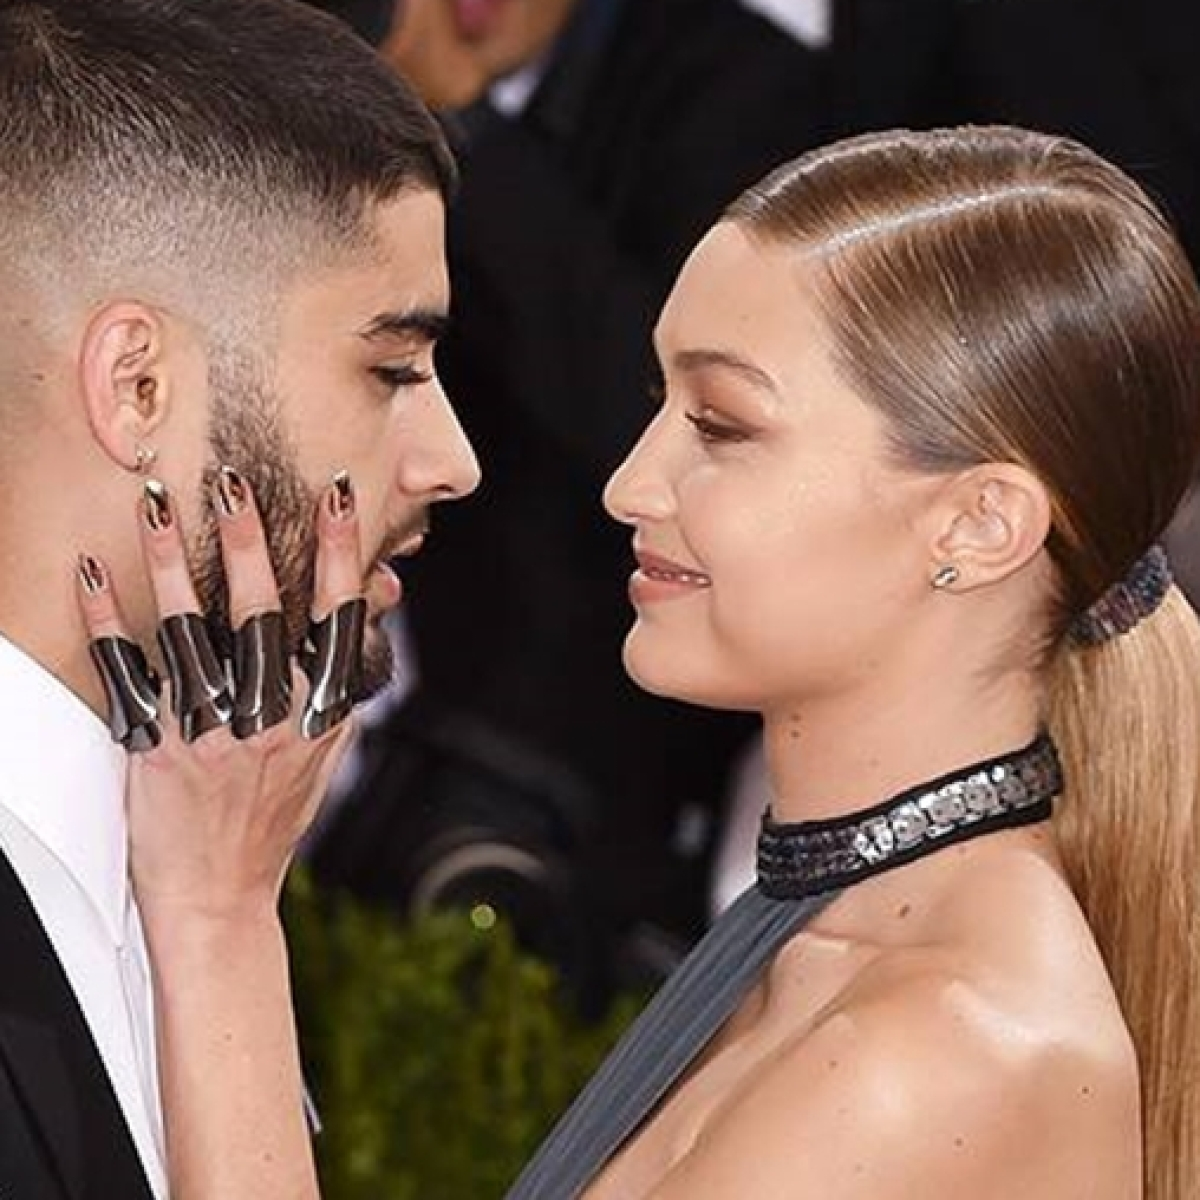 Twitter goes berserk over Gigi Hadid and Zayn Malik's pregnancy news